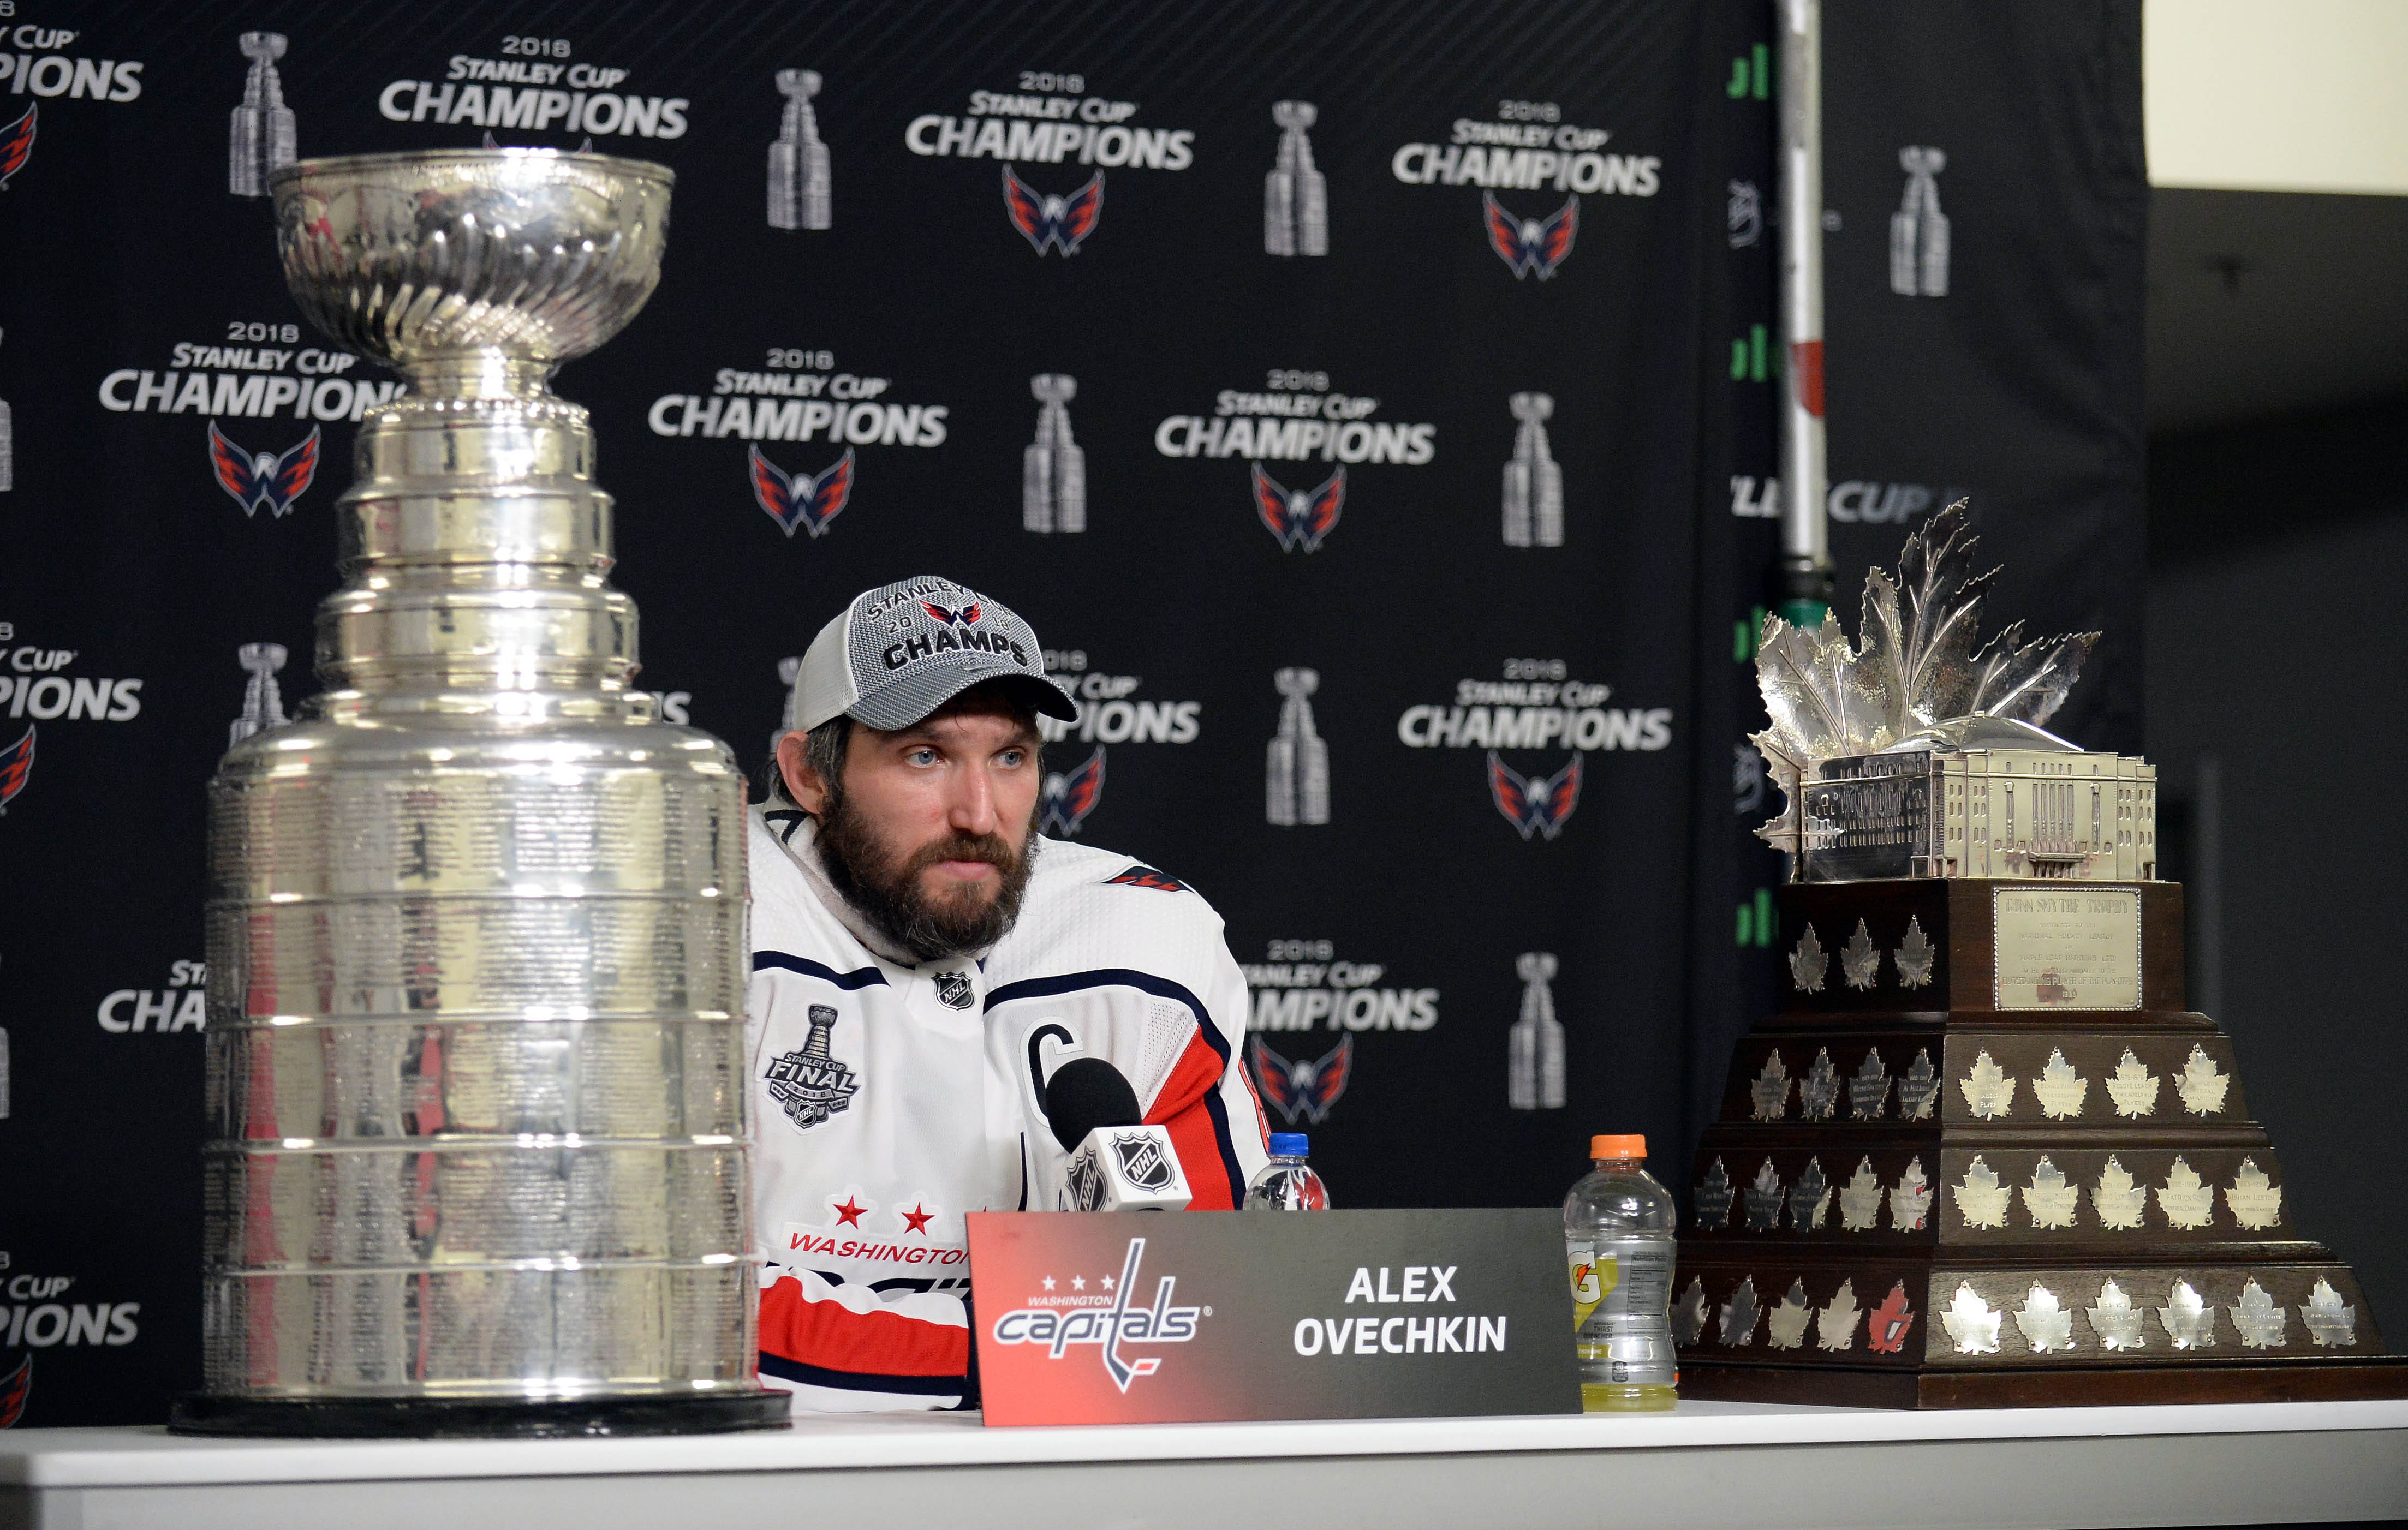 636640891257608345-USP-NHL-Stanley-Cup-Final-Washington-Capitals -at-100452399.JPG 4ceb25951d89